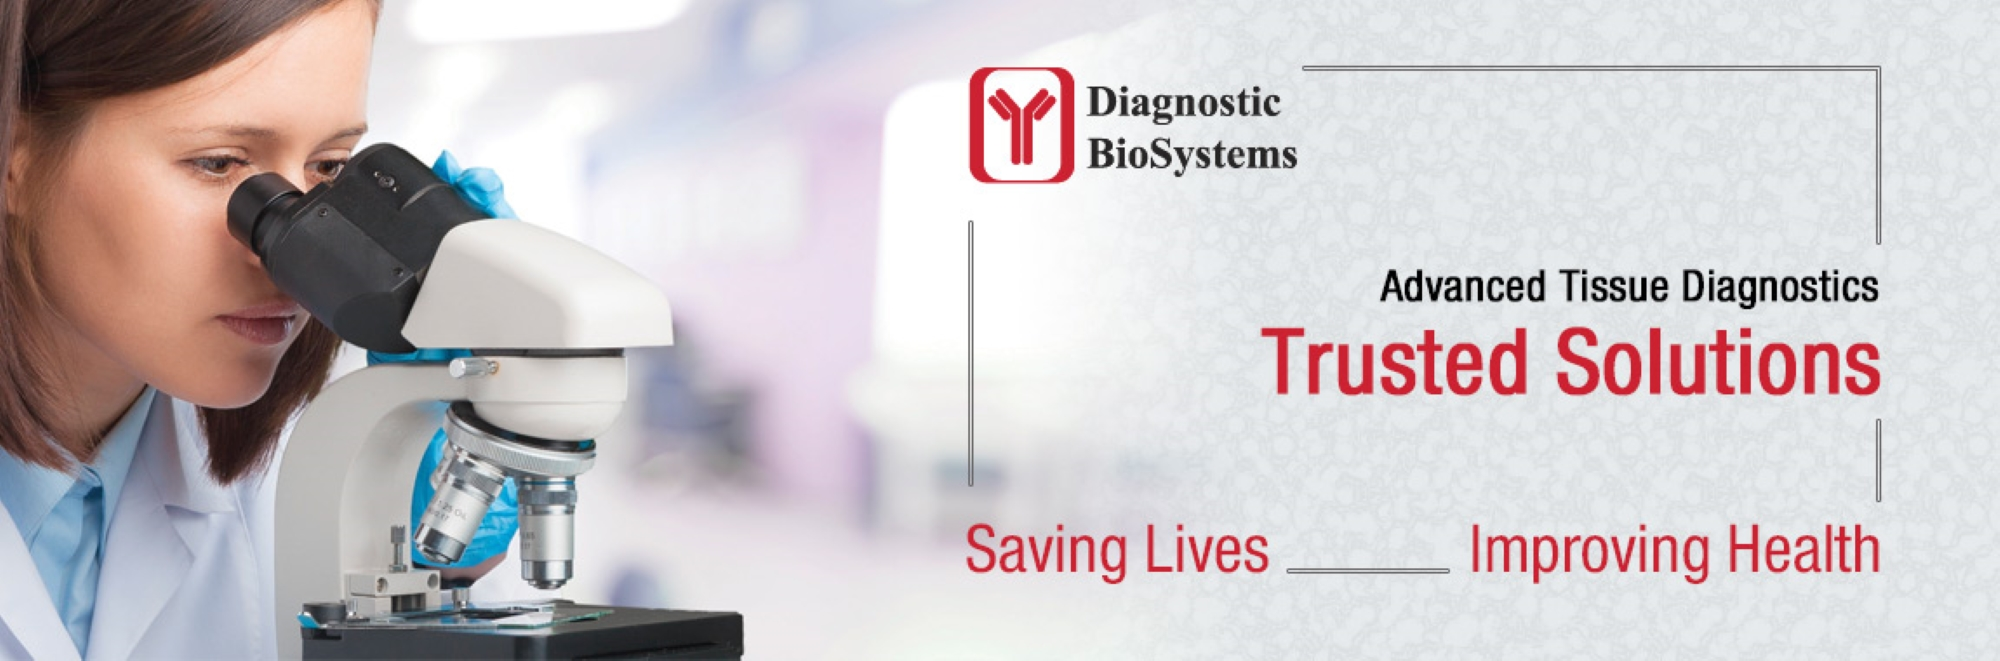 Diagnostic BioSystems distribution